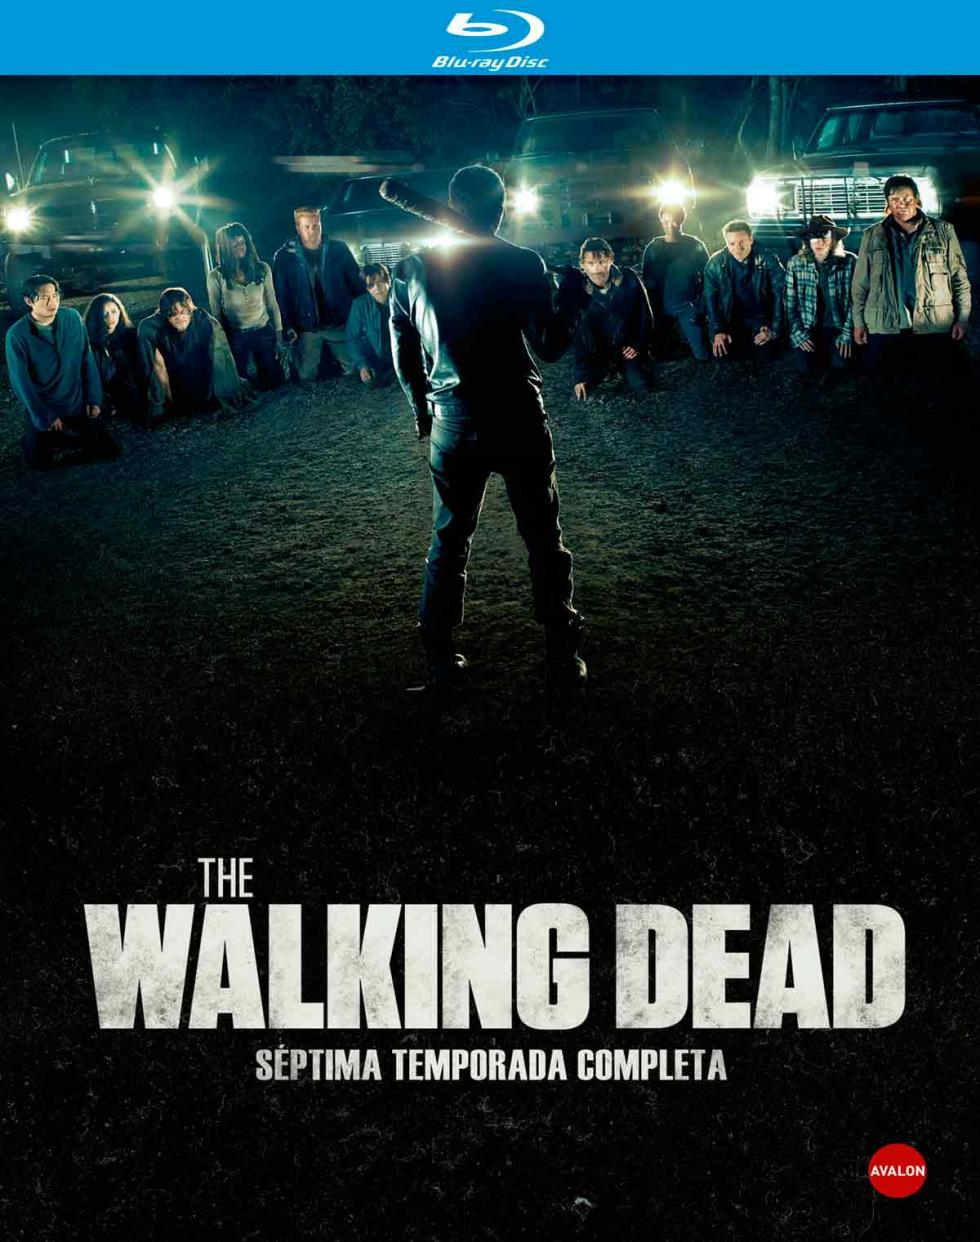 The Walking Dead 7